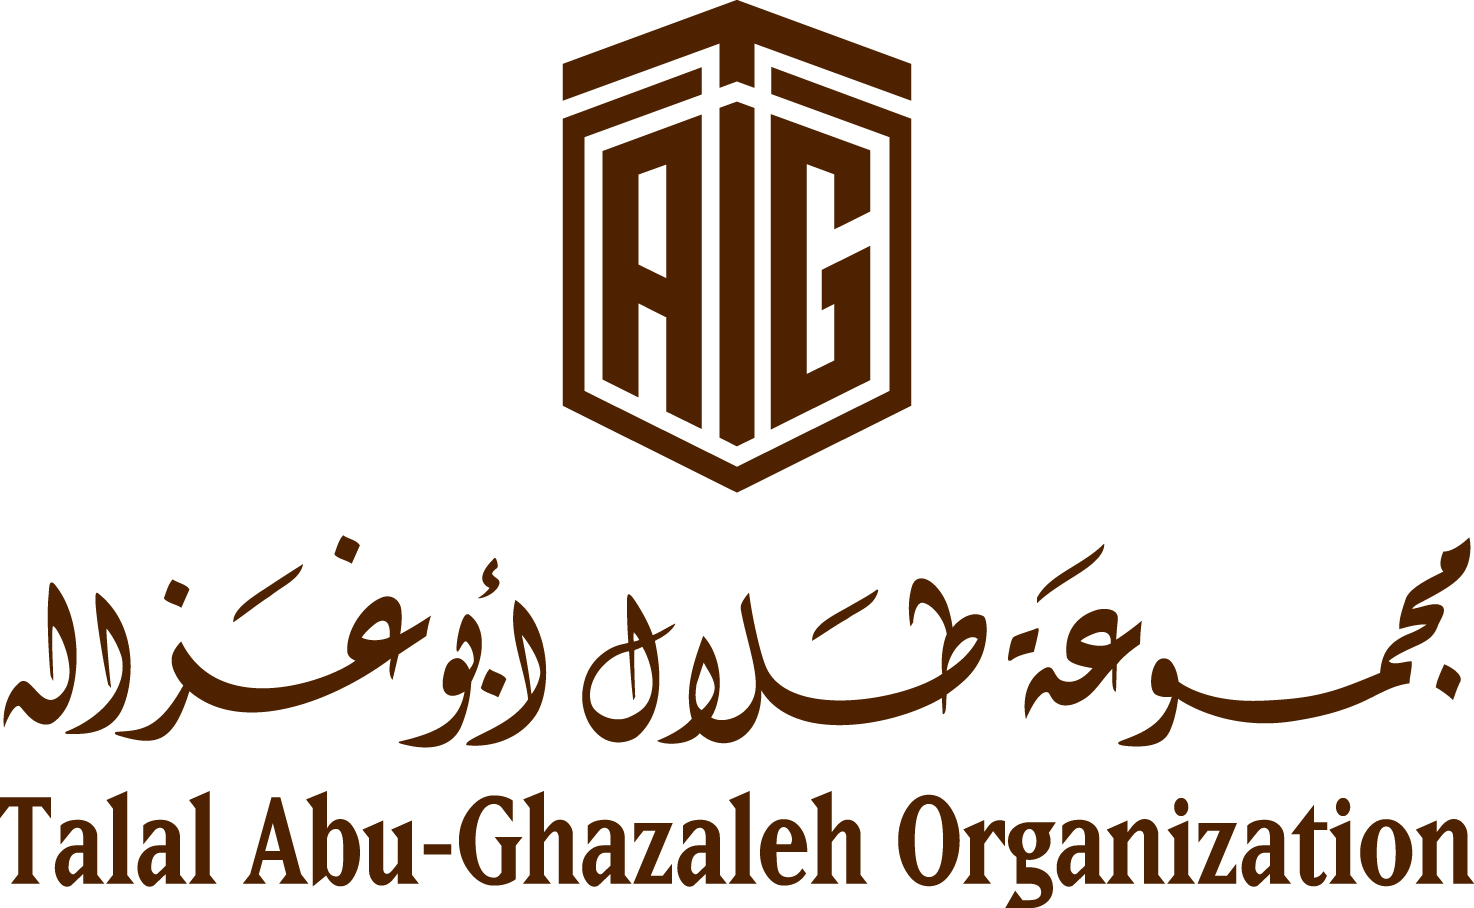 Talal Abu-Ghazaleh Organization Launches TAG-Cloud; A Private Cloud Serving TAG-Org Community and Clients